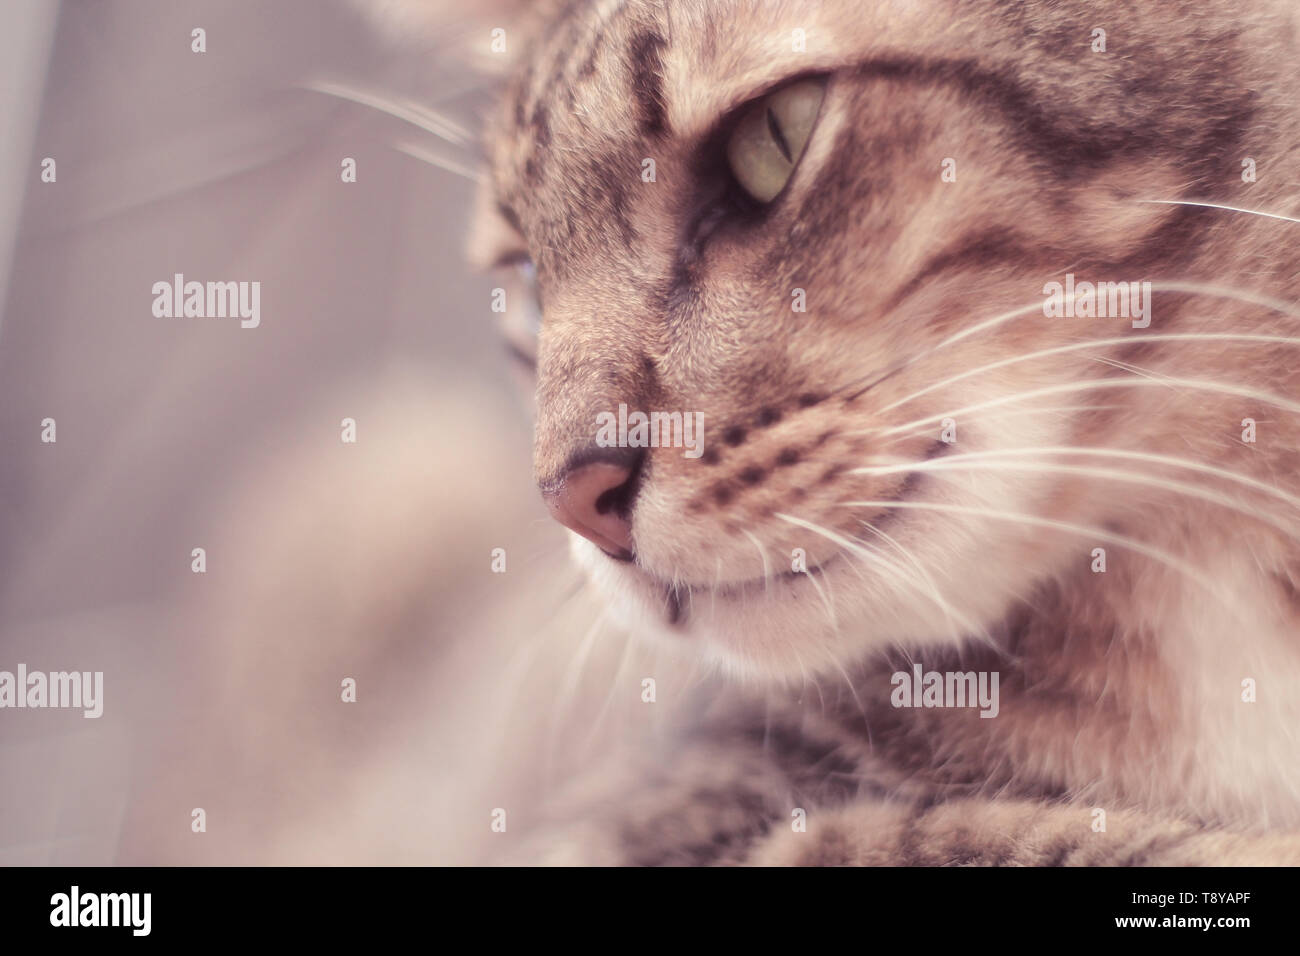 Portrait of brown mackerel young tabby cat adorable pet friend, close-up, curiousness looking and watching - Stock Image